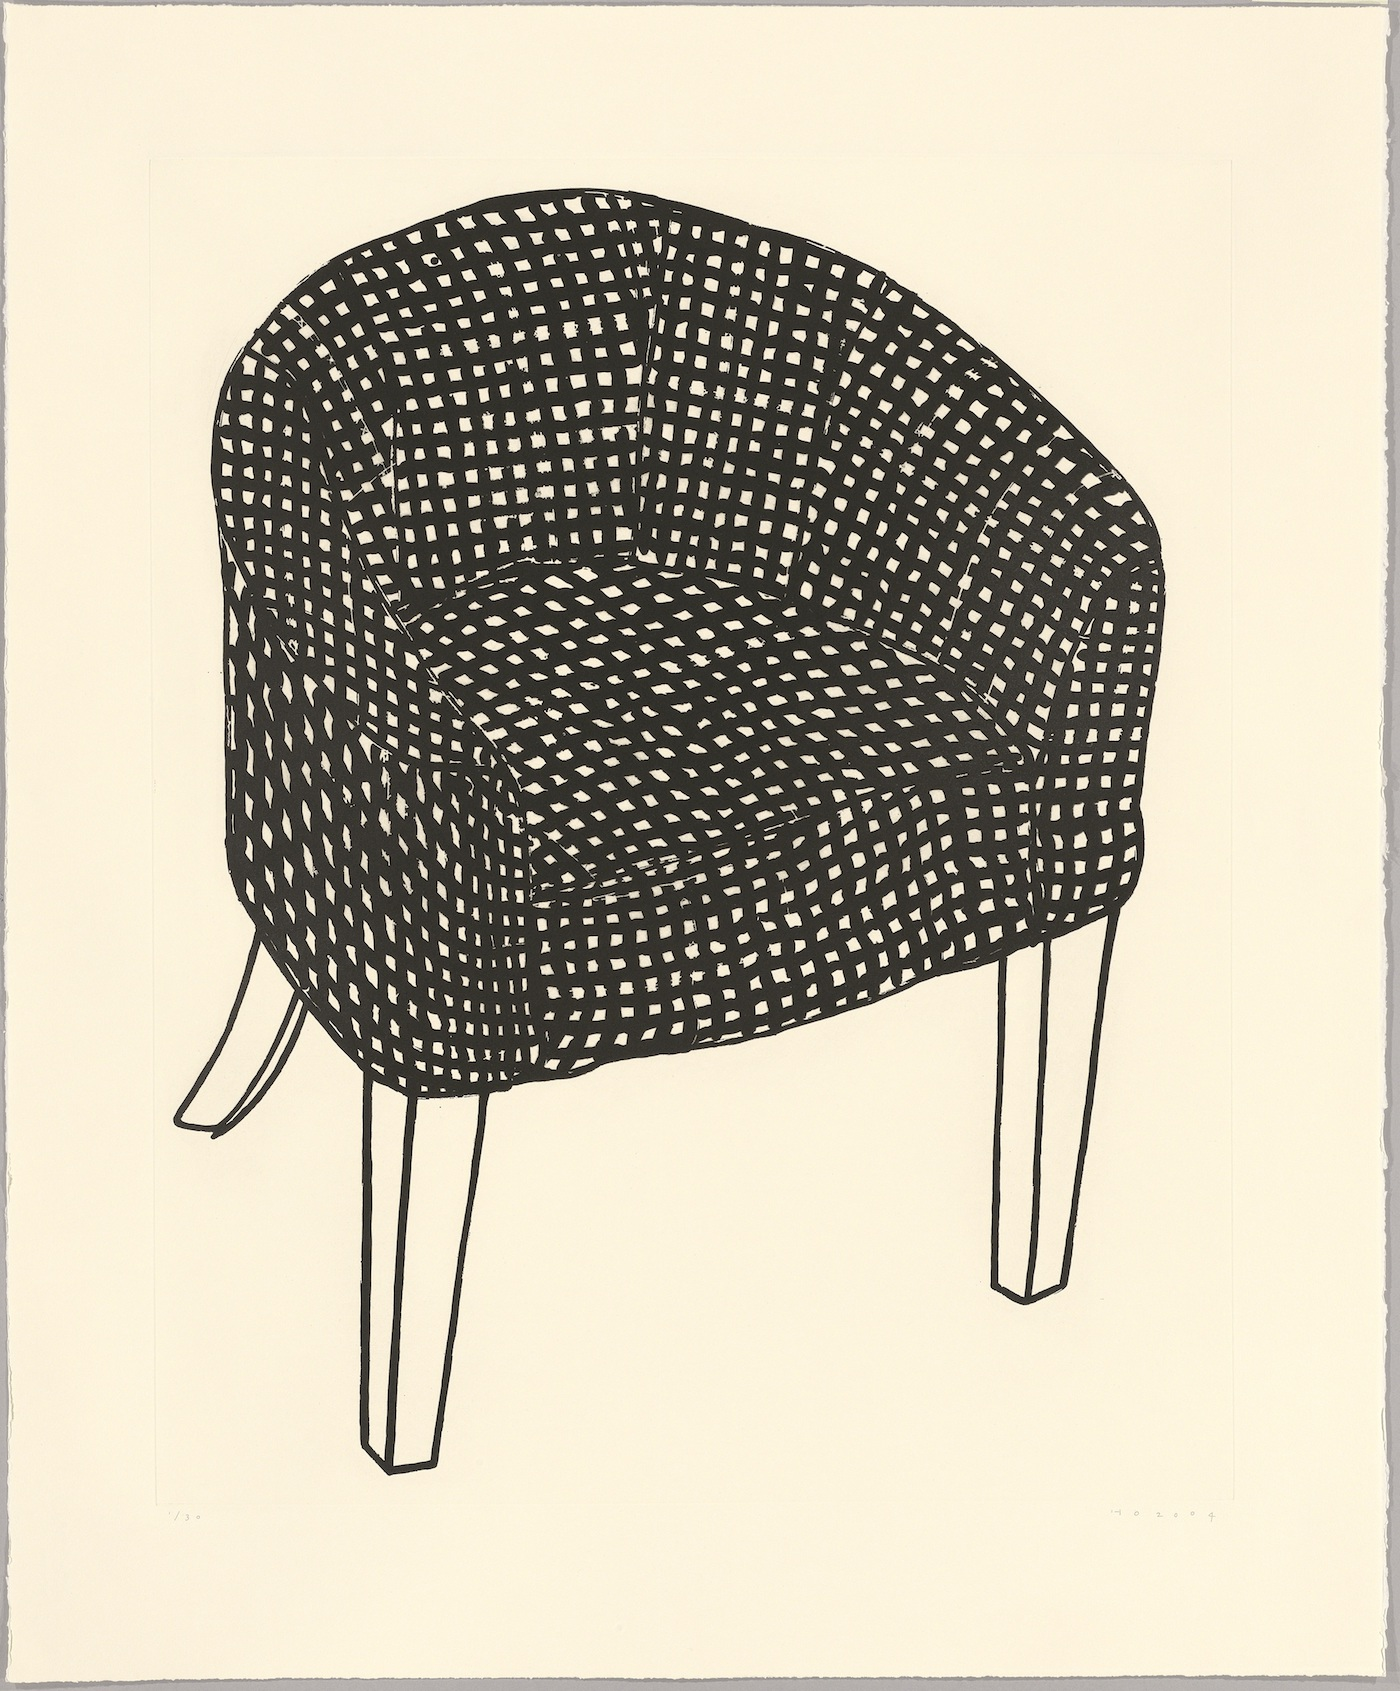 Humphrey Ocean, Fat Check Chair, 2006